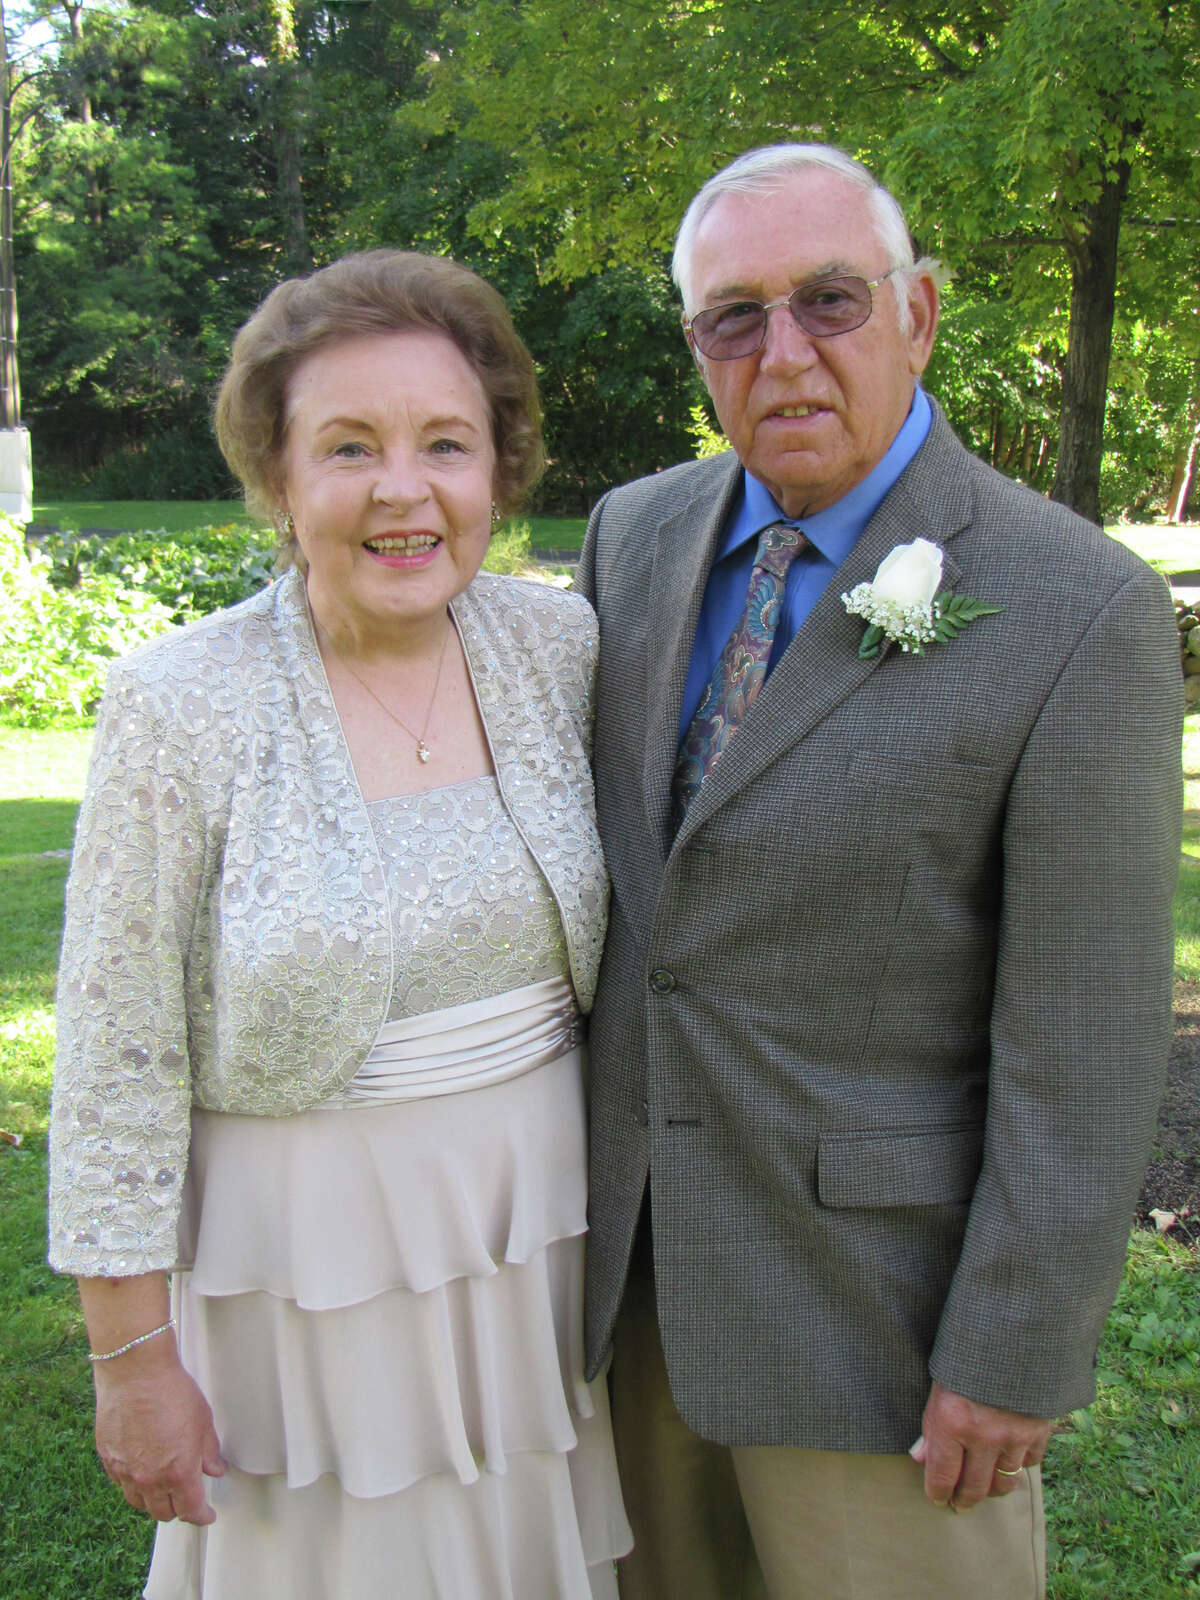 Patricia and Michael Lawrence of Danbury on their 50th wedding anniversary